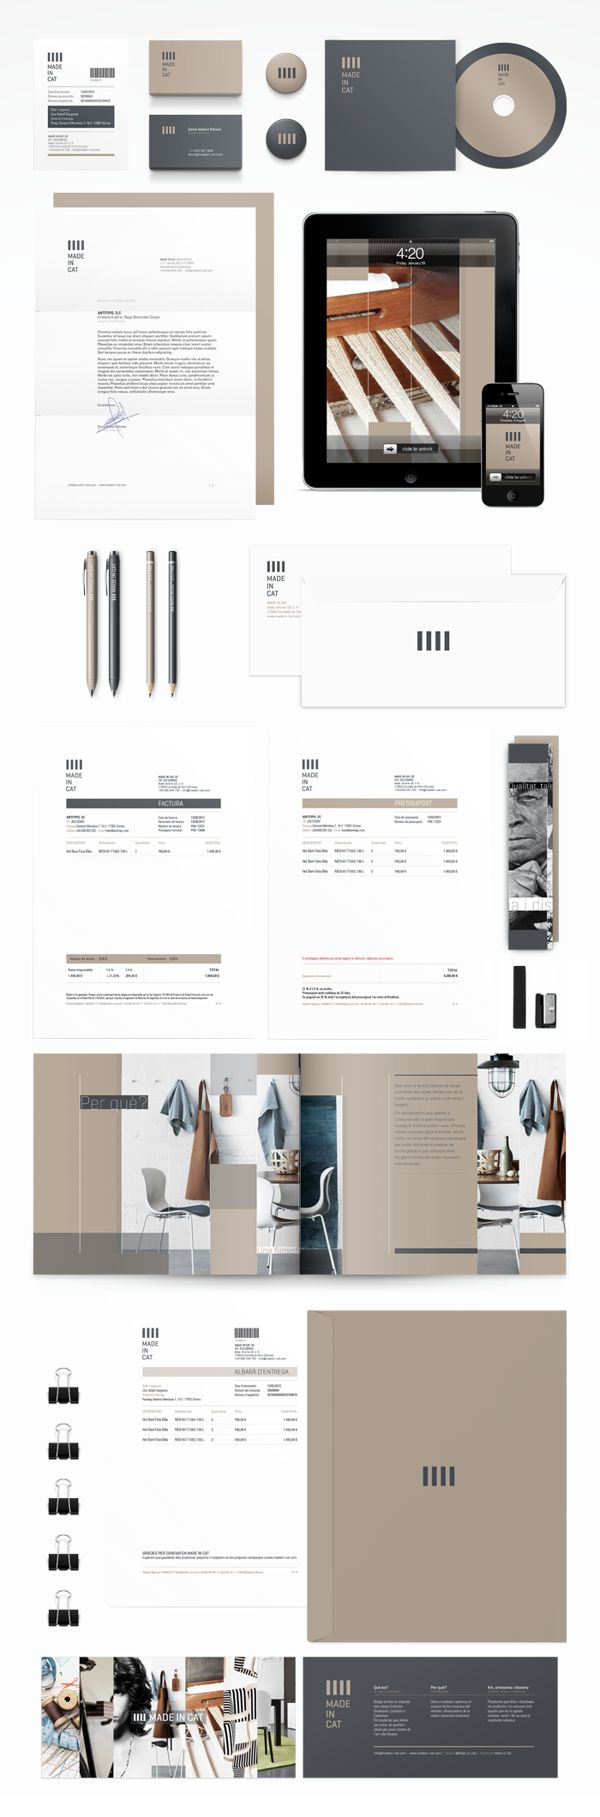 Made in Cat by Antitipo , via Behance | #stationary #corporate #design #corporatedesign #identity #branding #marketing < repinned by www.BlickeDeeler.de